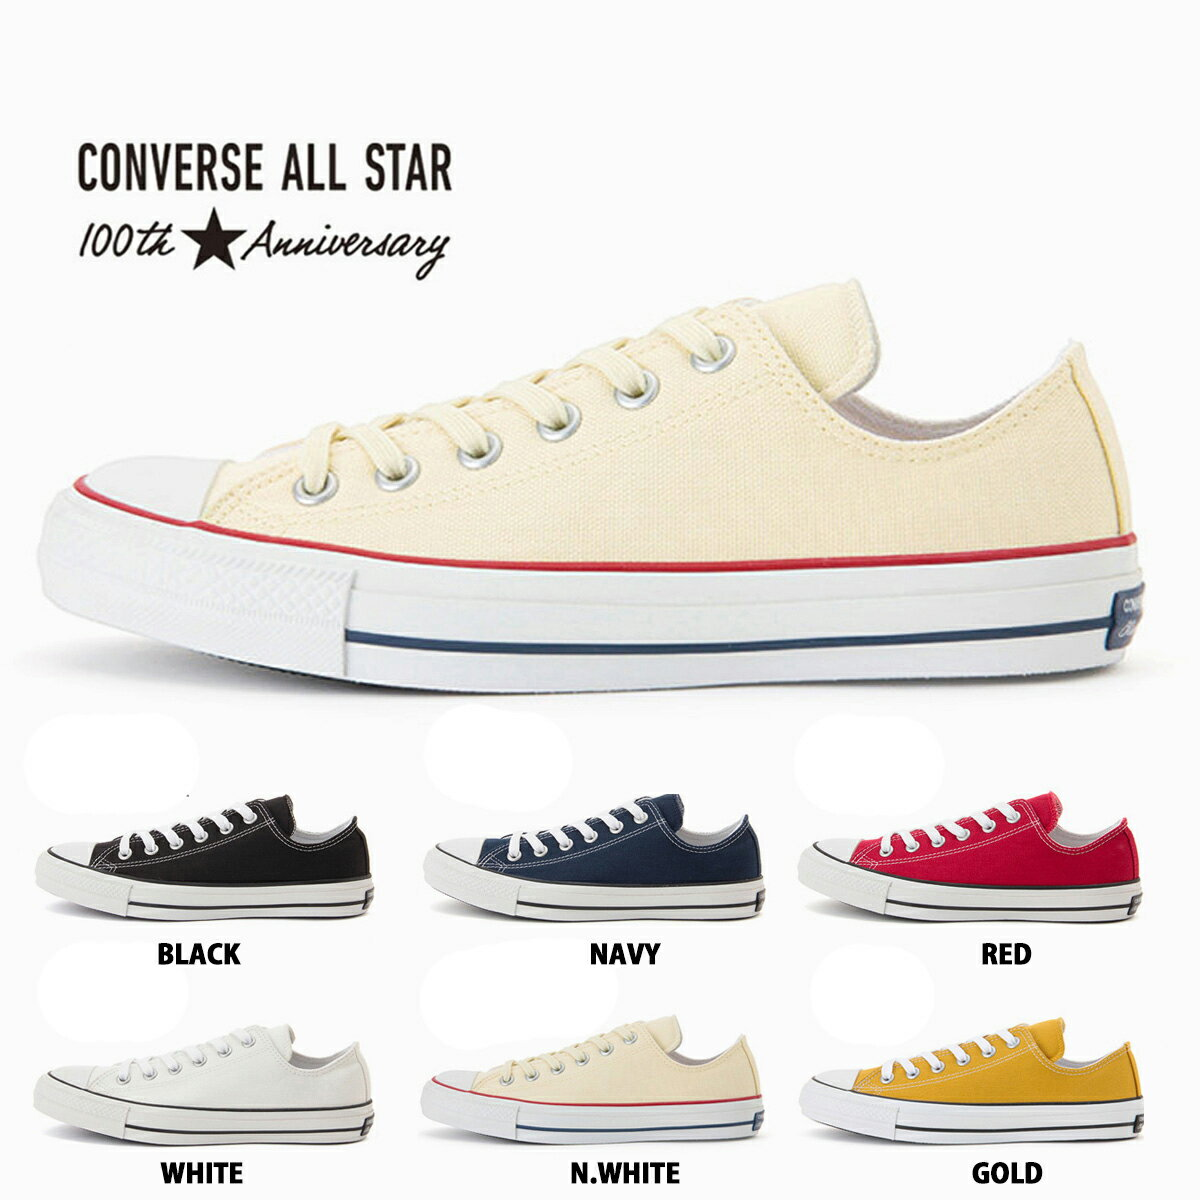 CONVERSE ALL STAR 100 COLORS OX 【100周年】 【100th ANNIVERSARY】 コンバース オールスター 100 カラーズ OX 6色 32861792 32861795 32861791 32861790 32862290 32862299